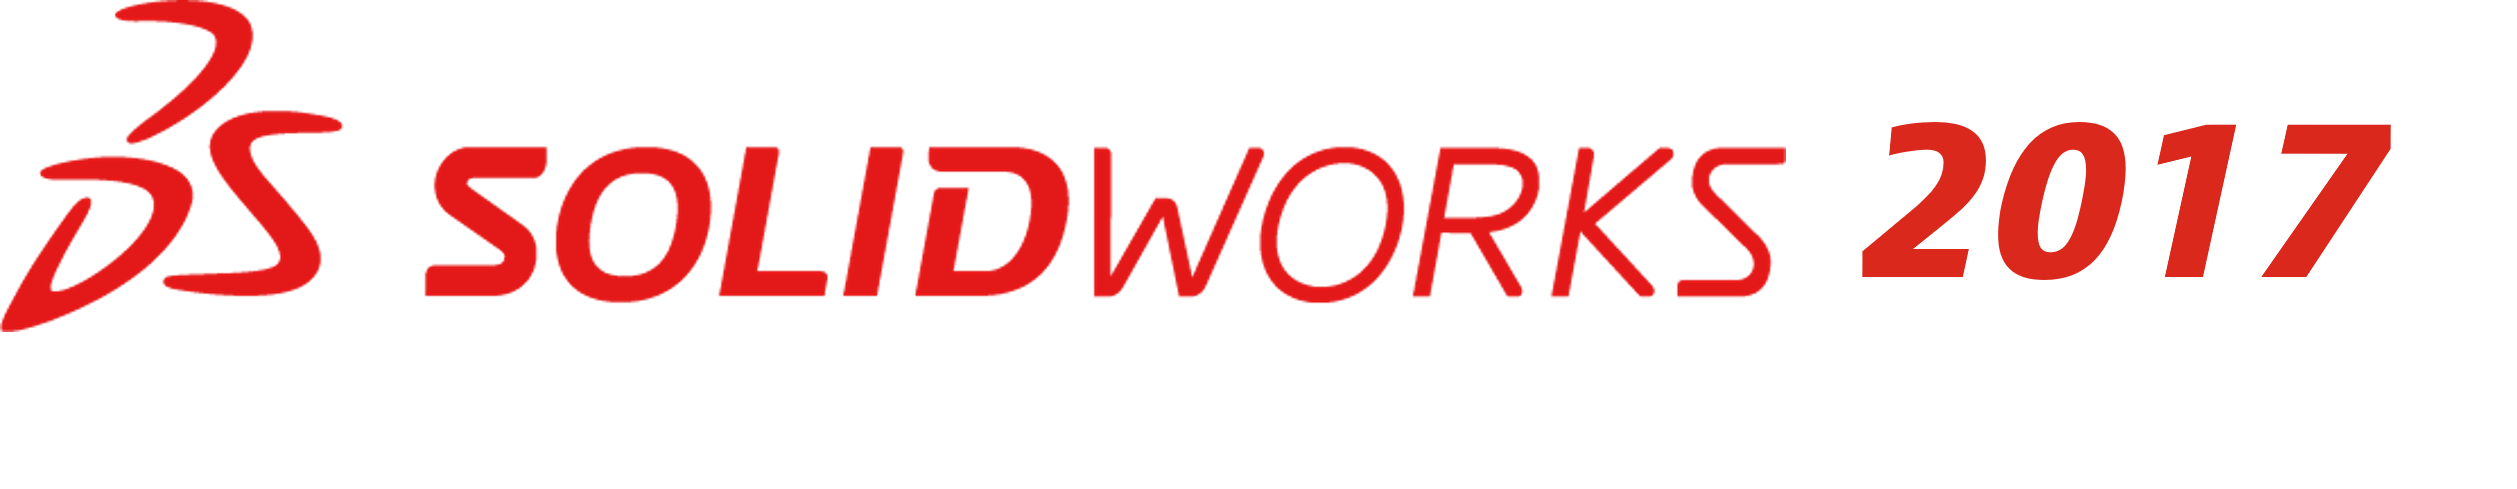 solidworks 2017.png